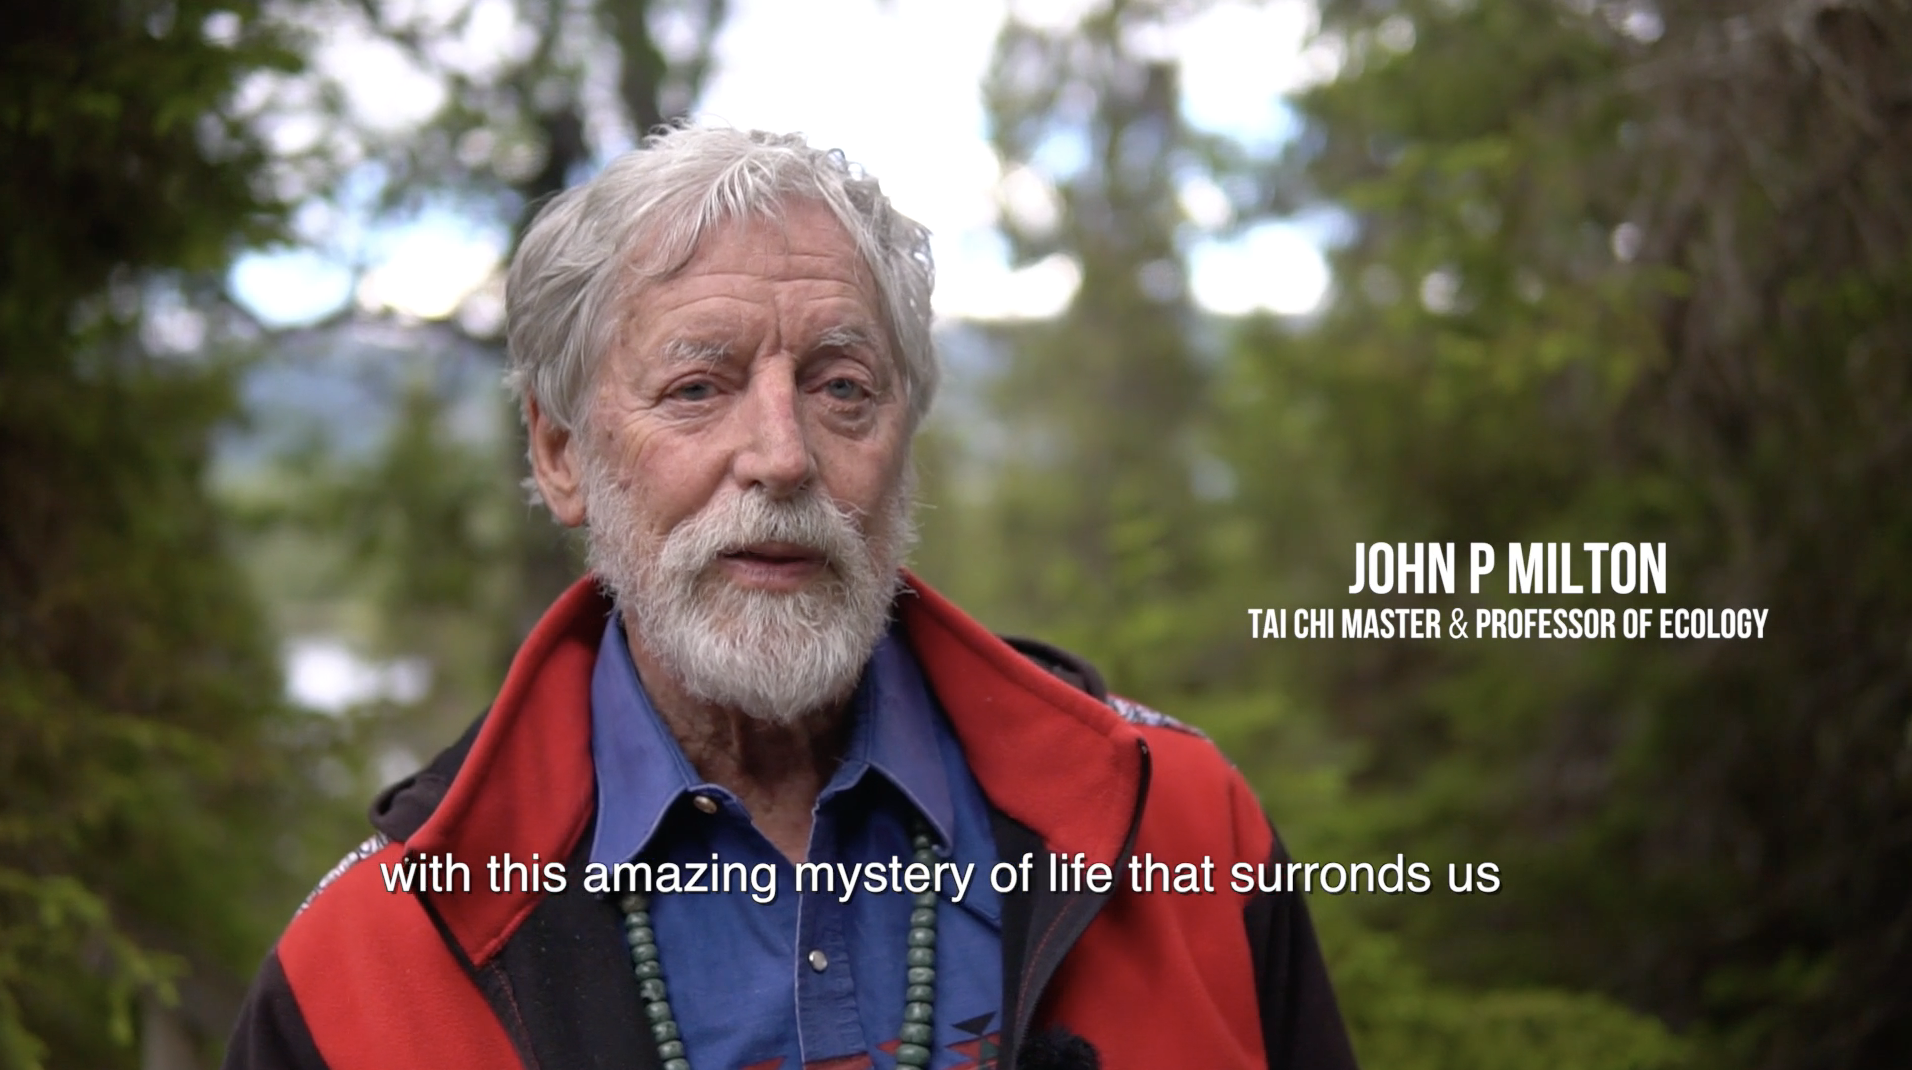 Prof. John P. Milton about re-connecting with nature